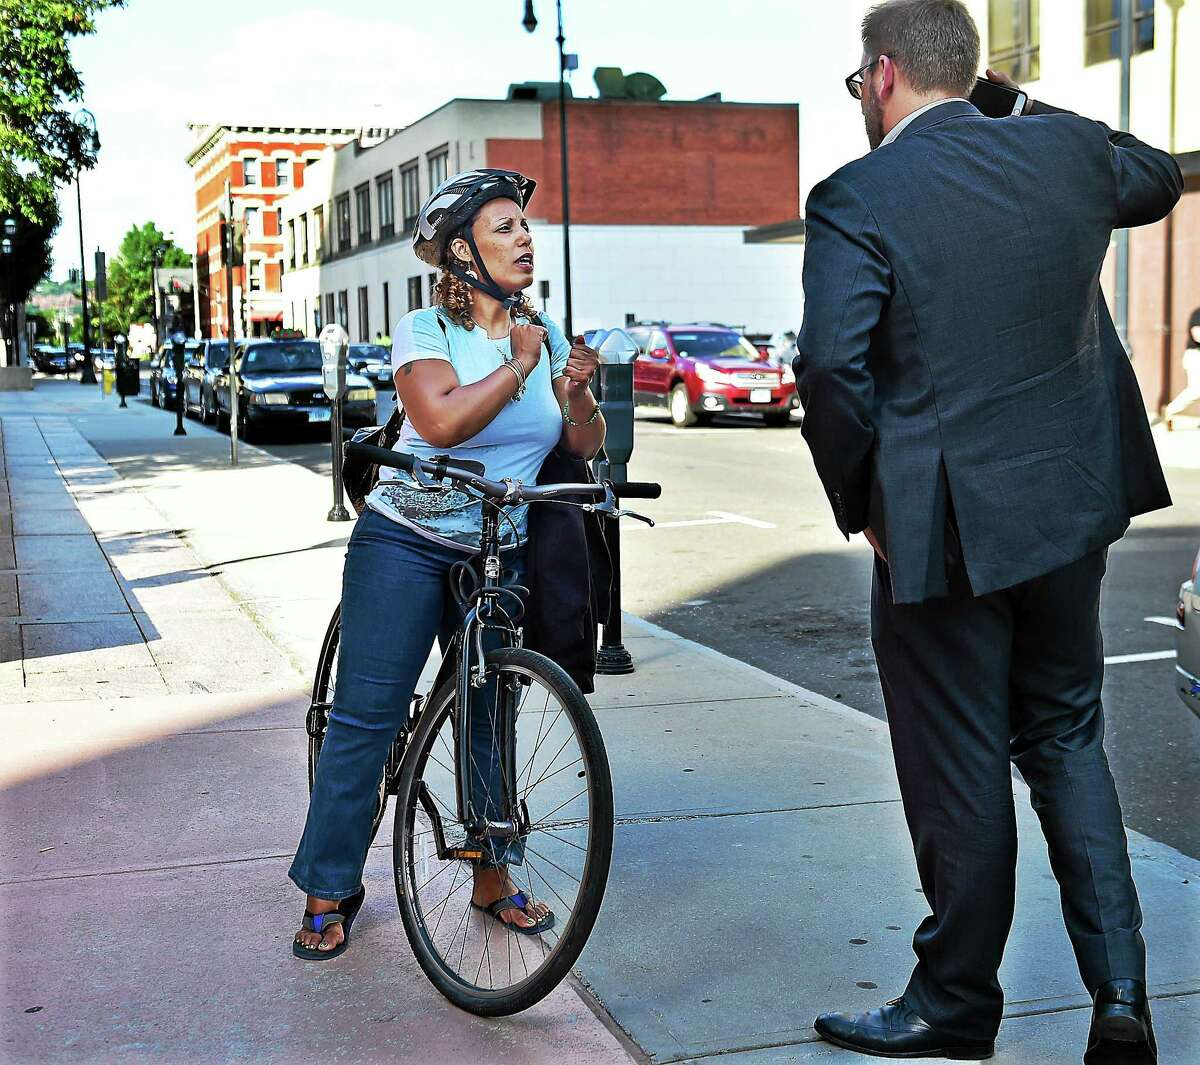 Doug Hausladen, the Director of Transportation, Traffic & Parking talks to a bicyclist who still prefers sidewalks over the bike path in New Haven, Wednesday August 26, 2015.